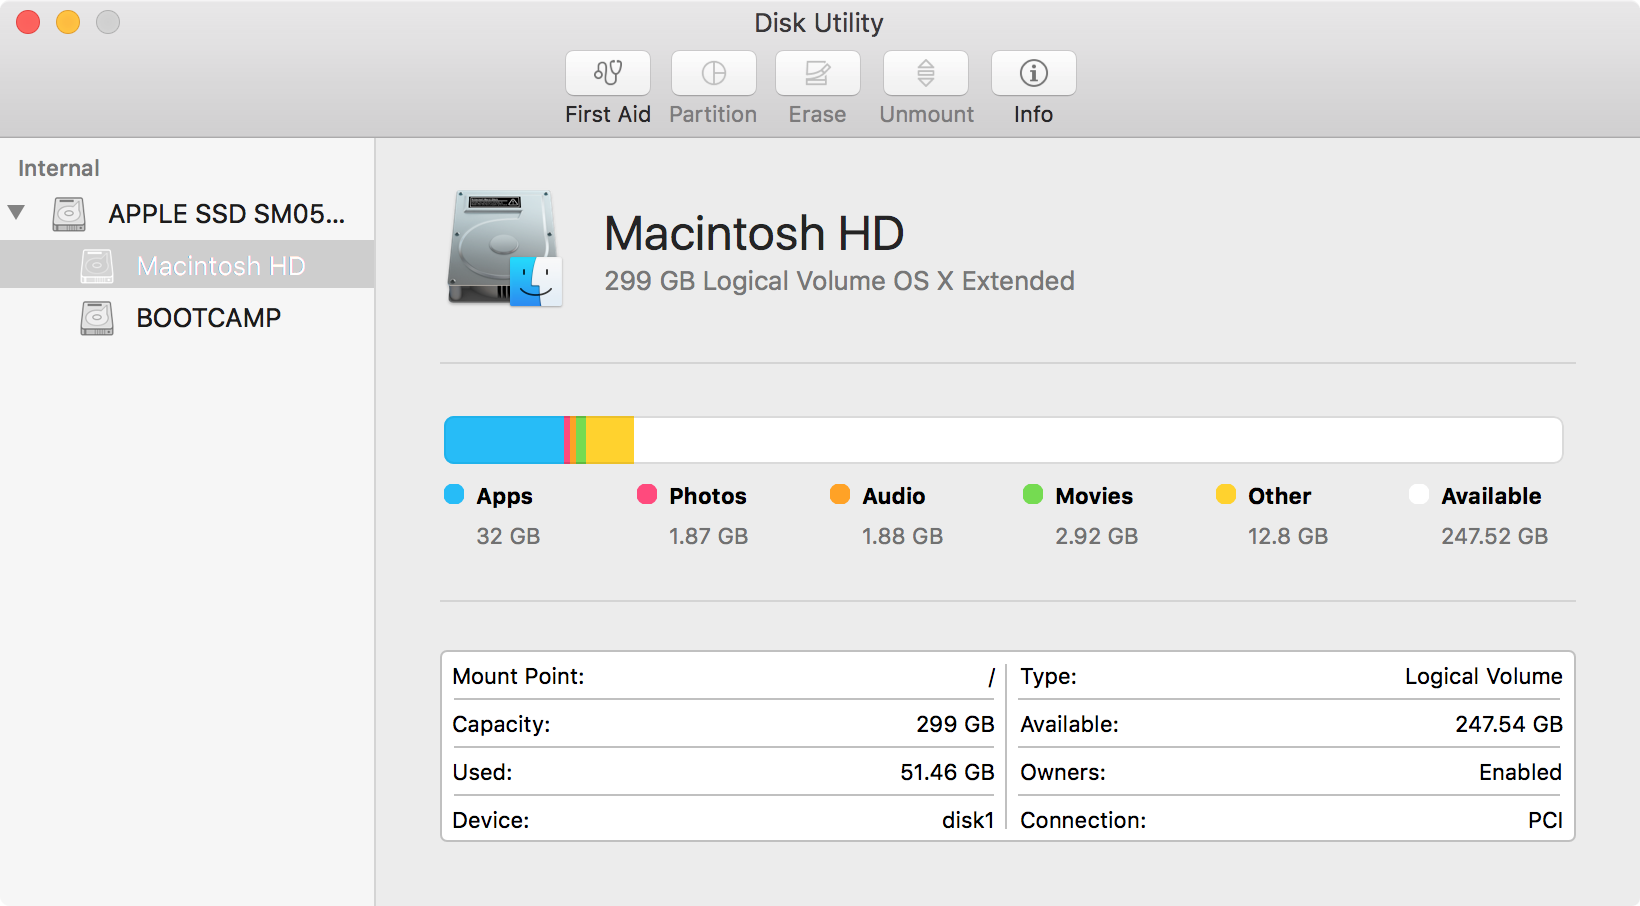 Disk Utility OS X app Macintosh HD selected